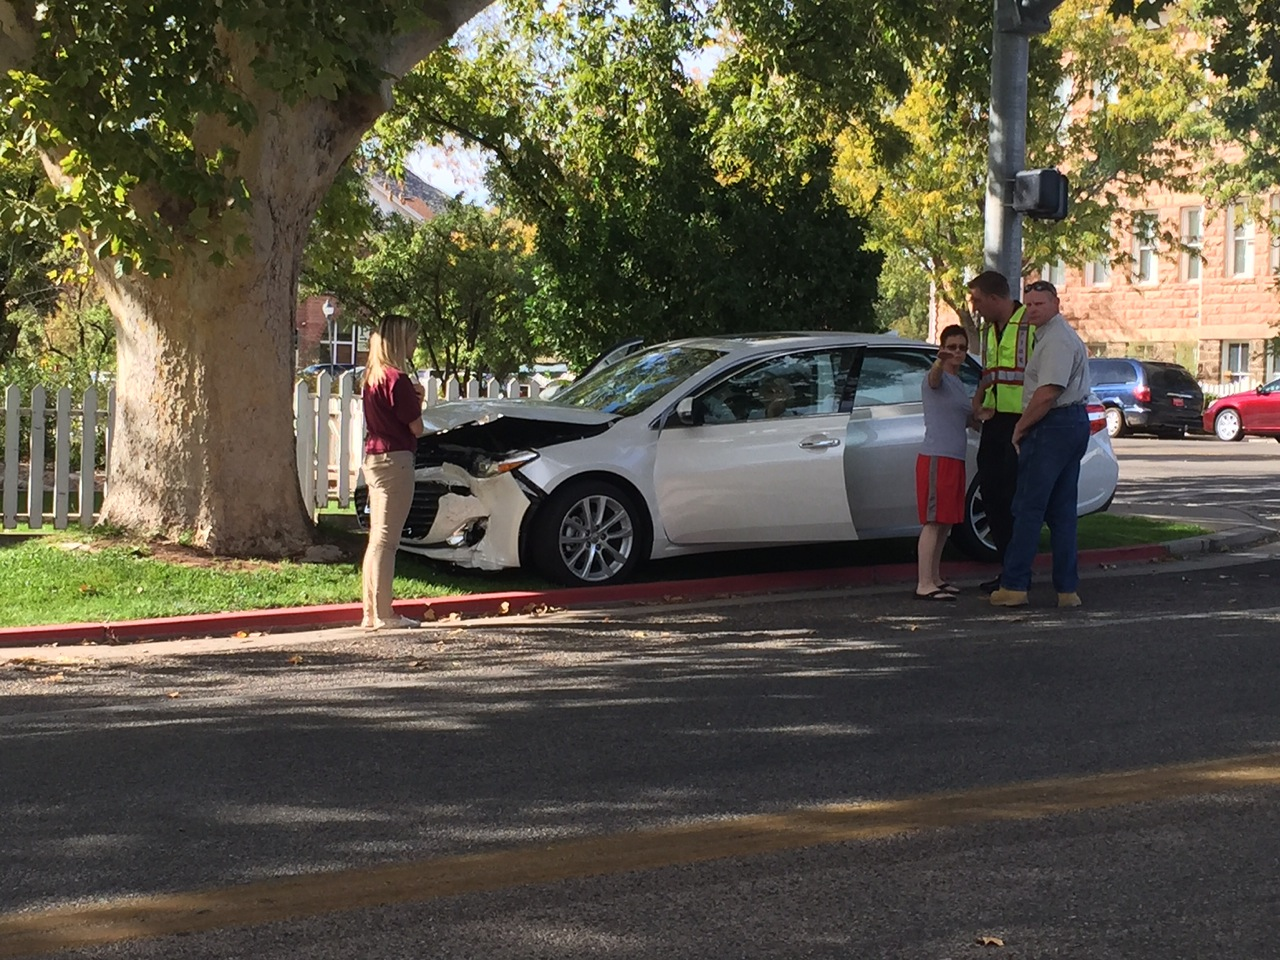 Aftermath of a two-car collision at Main Street and 100 South, St. George, Utah, Oct. 21, 2014 | Photos courtesy of Corbin Wade, St. George News